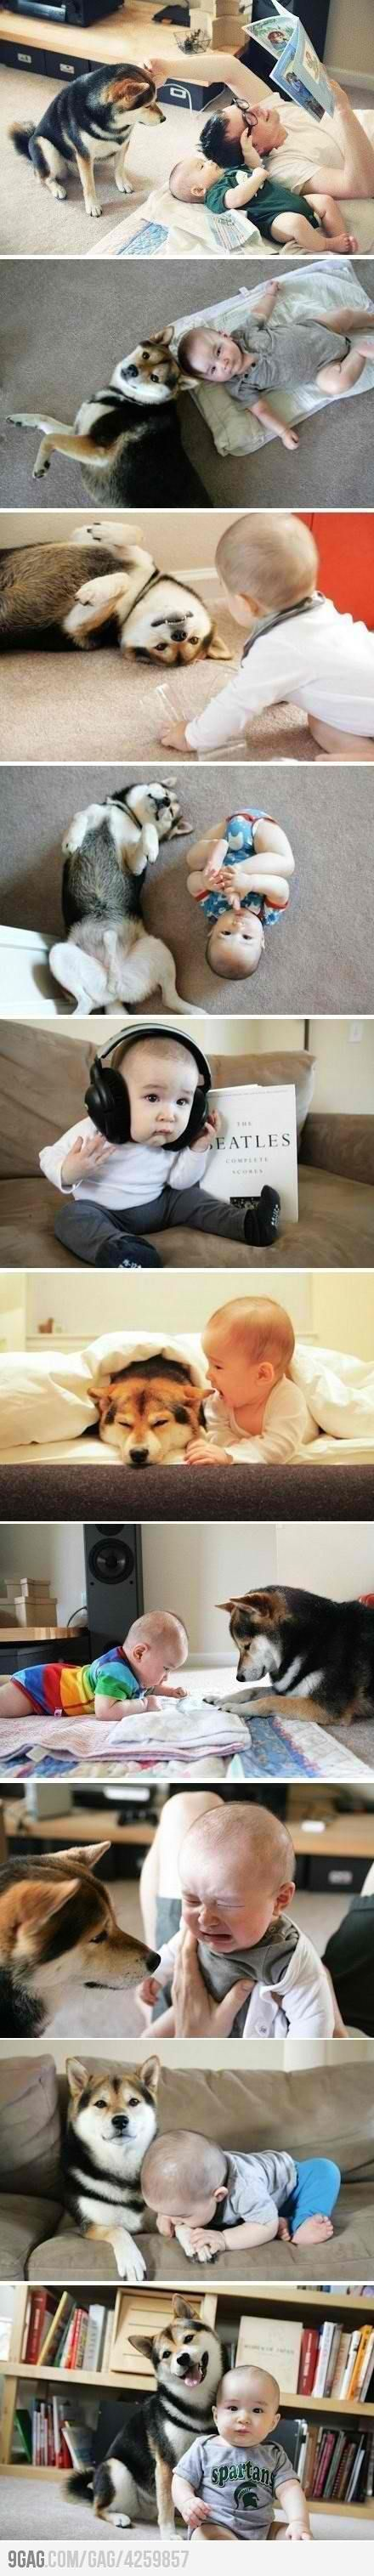 Hope I will find a friend like this for my children  Shiba Inu or Akita Inu?? It's likely to be Shiba Inu.